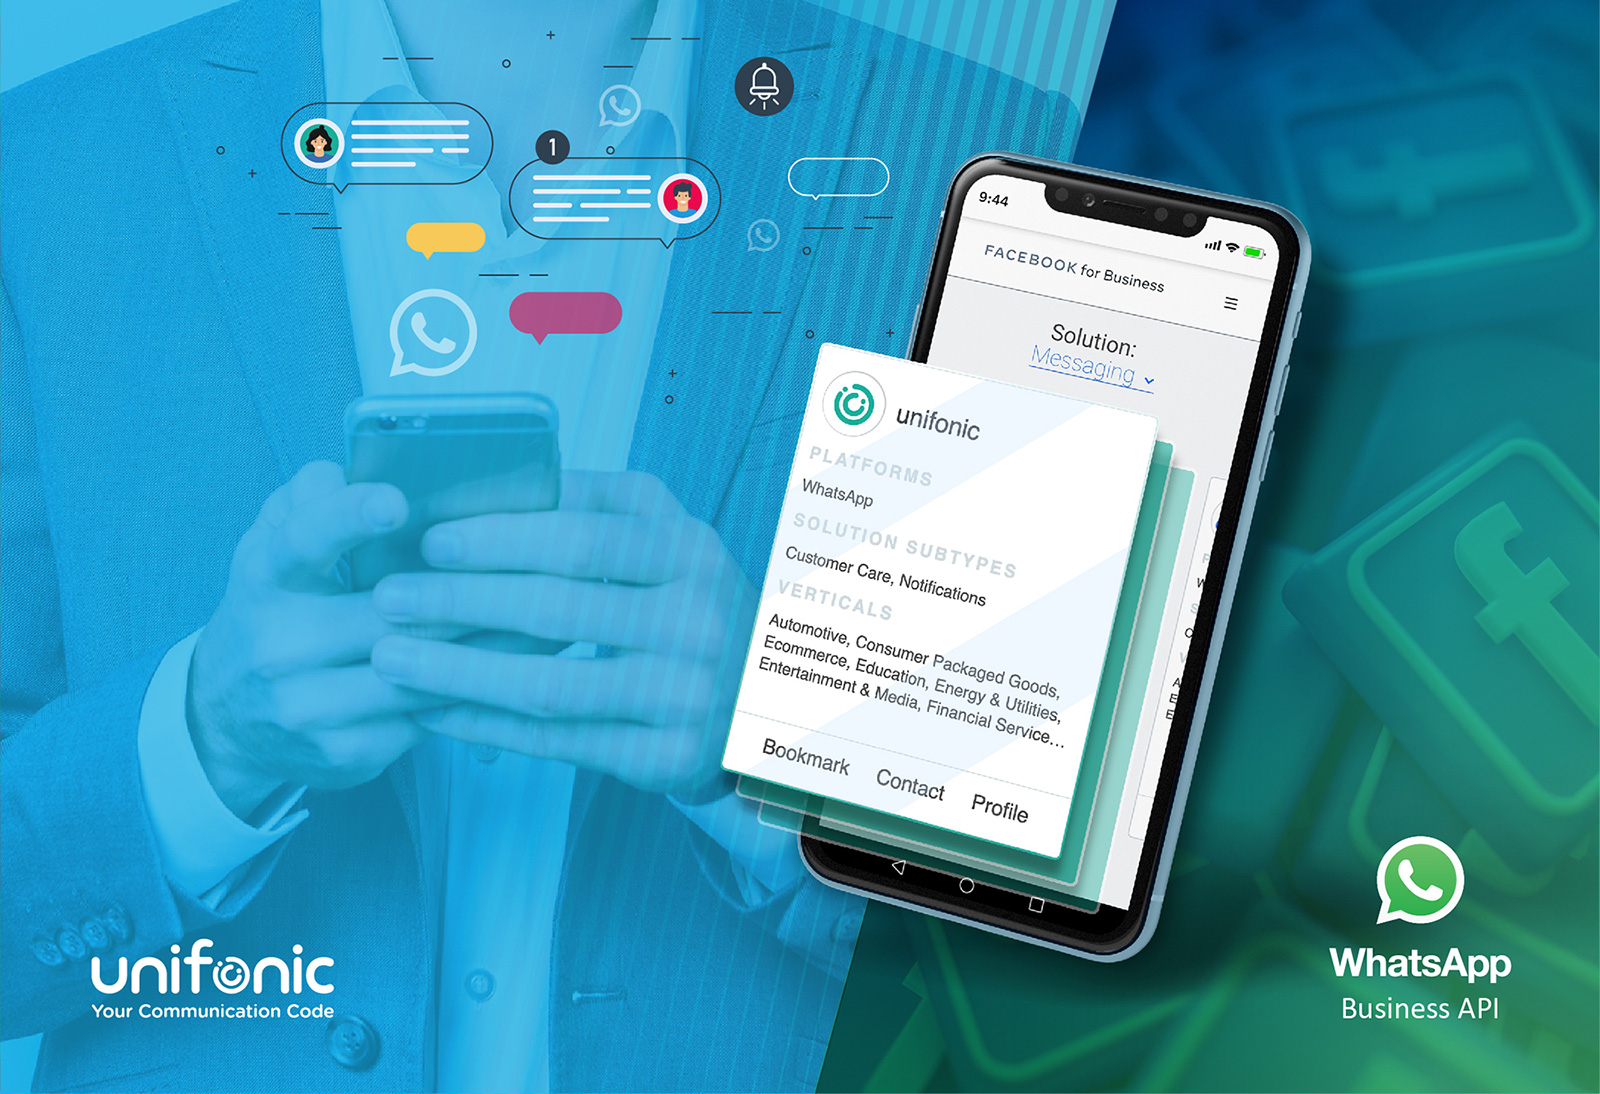 Unifonic is selected as WhatsApp Business Solution Provider